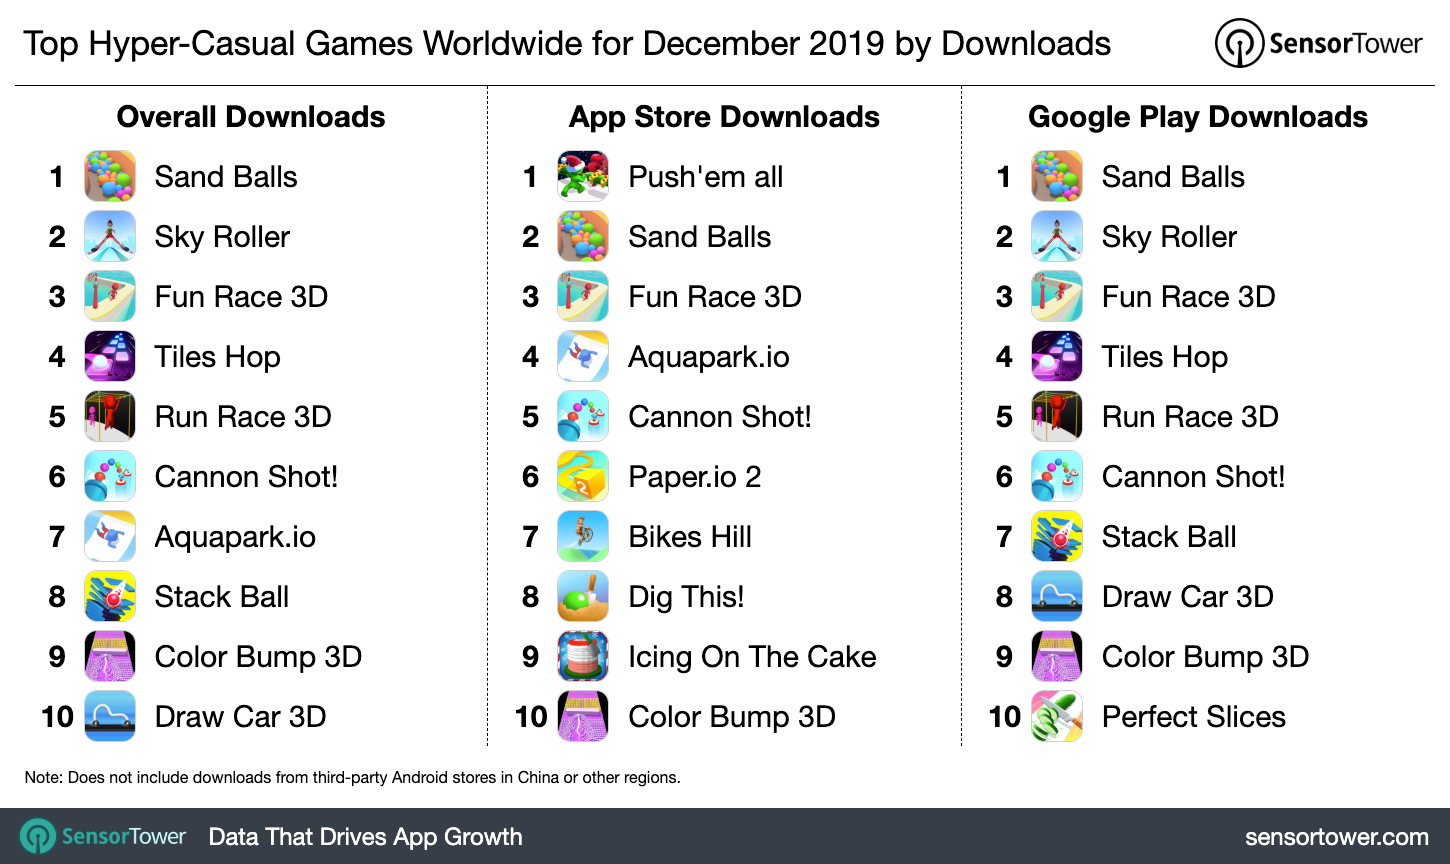 Amazoncouk Watch Clip Roblox Gameplay Hrithik Prime Video Top Hyper Casual Games Worldwide For December 2019 By Downloads Internet Technology News